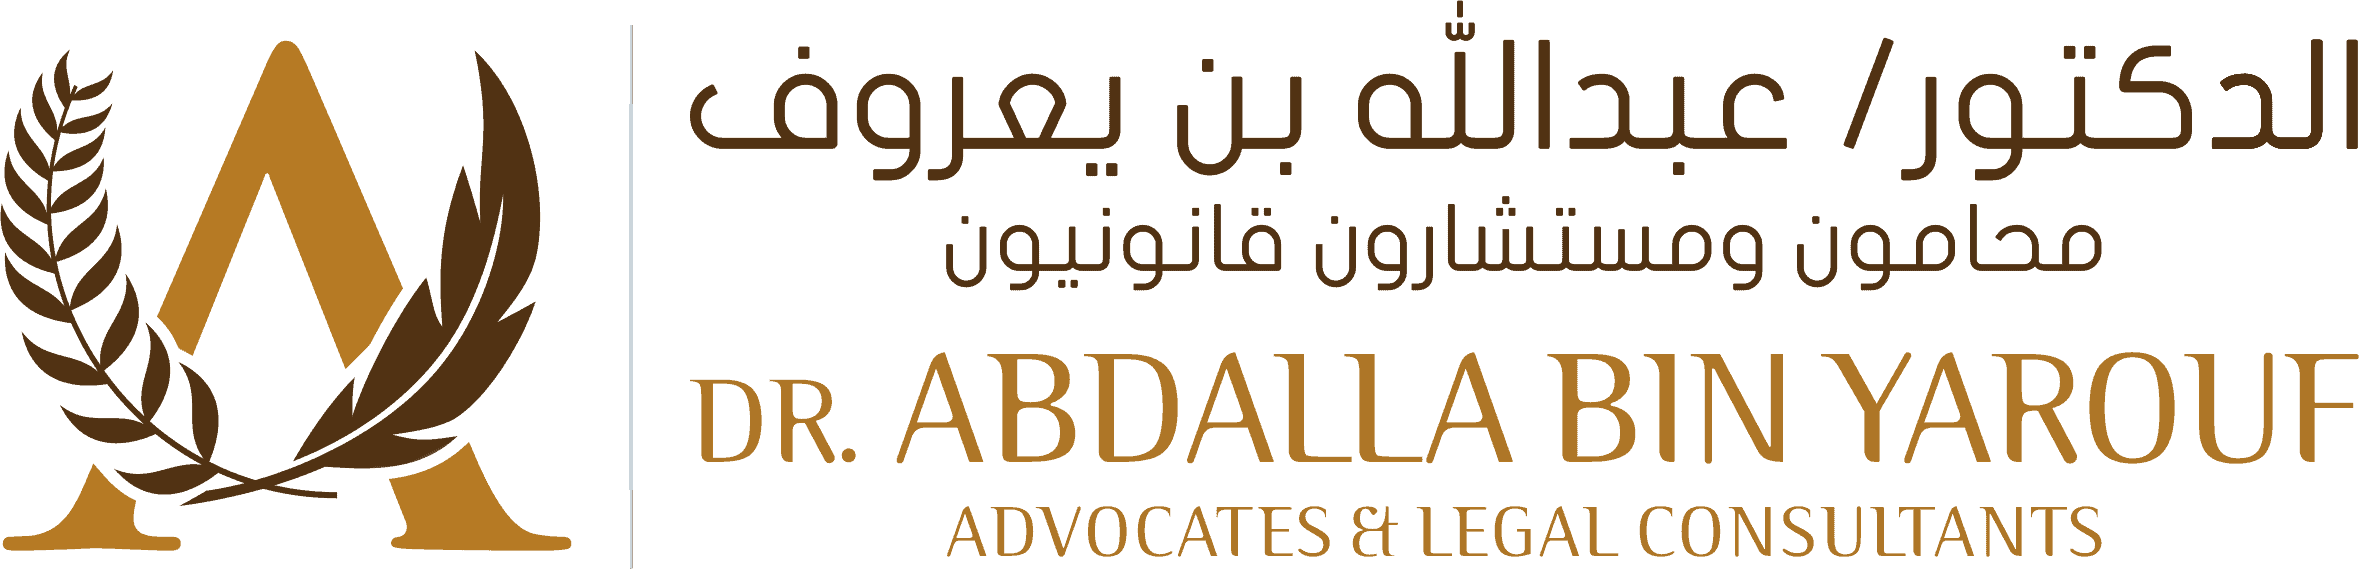 Dr Abdalla Bin Yarouf Adcocates and Legal Consultants